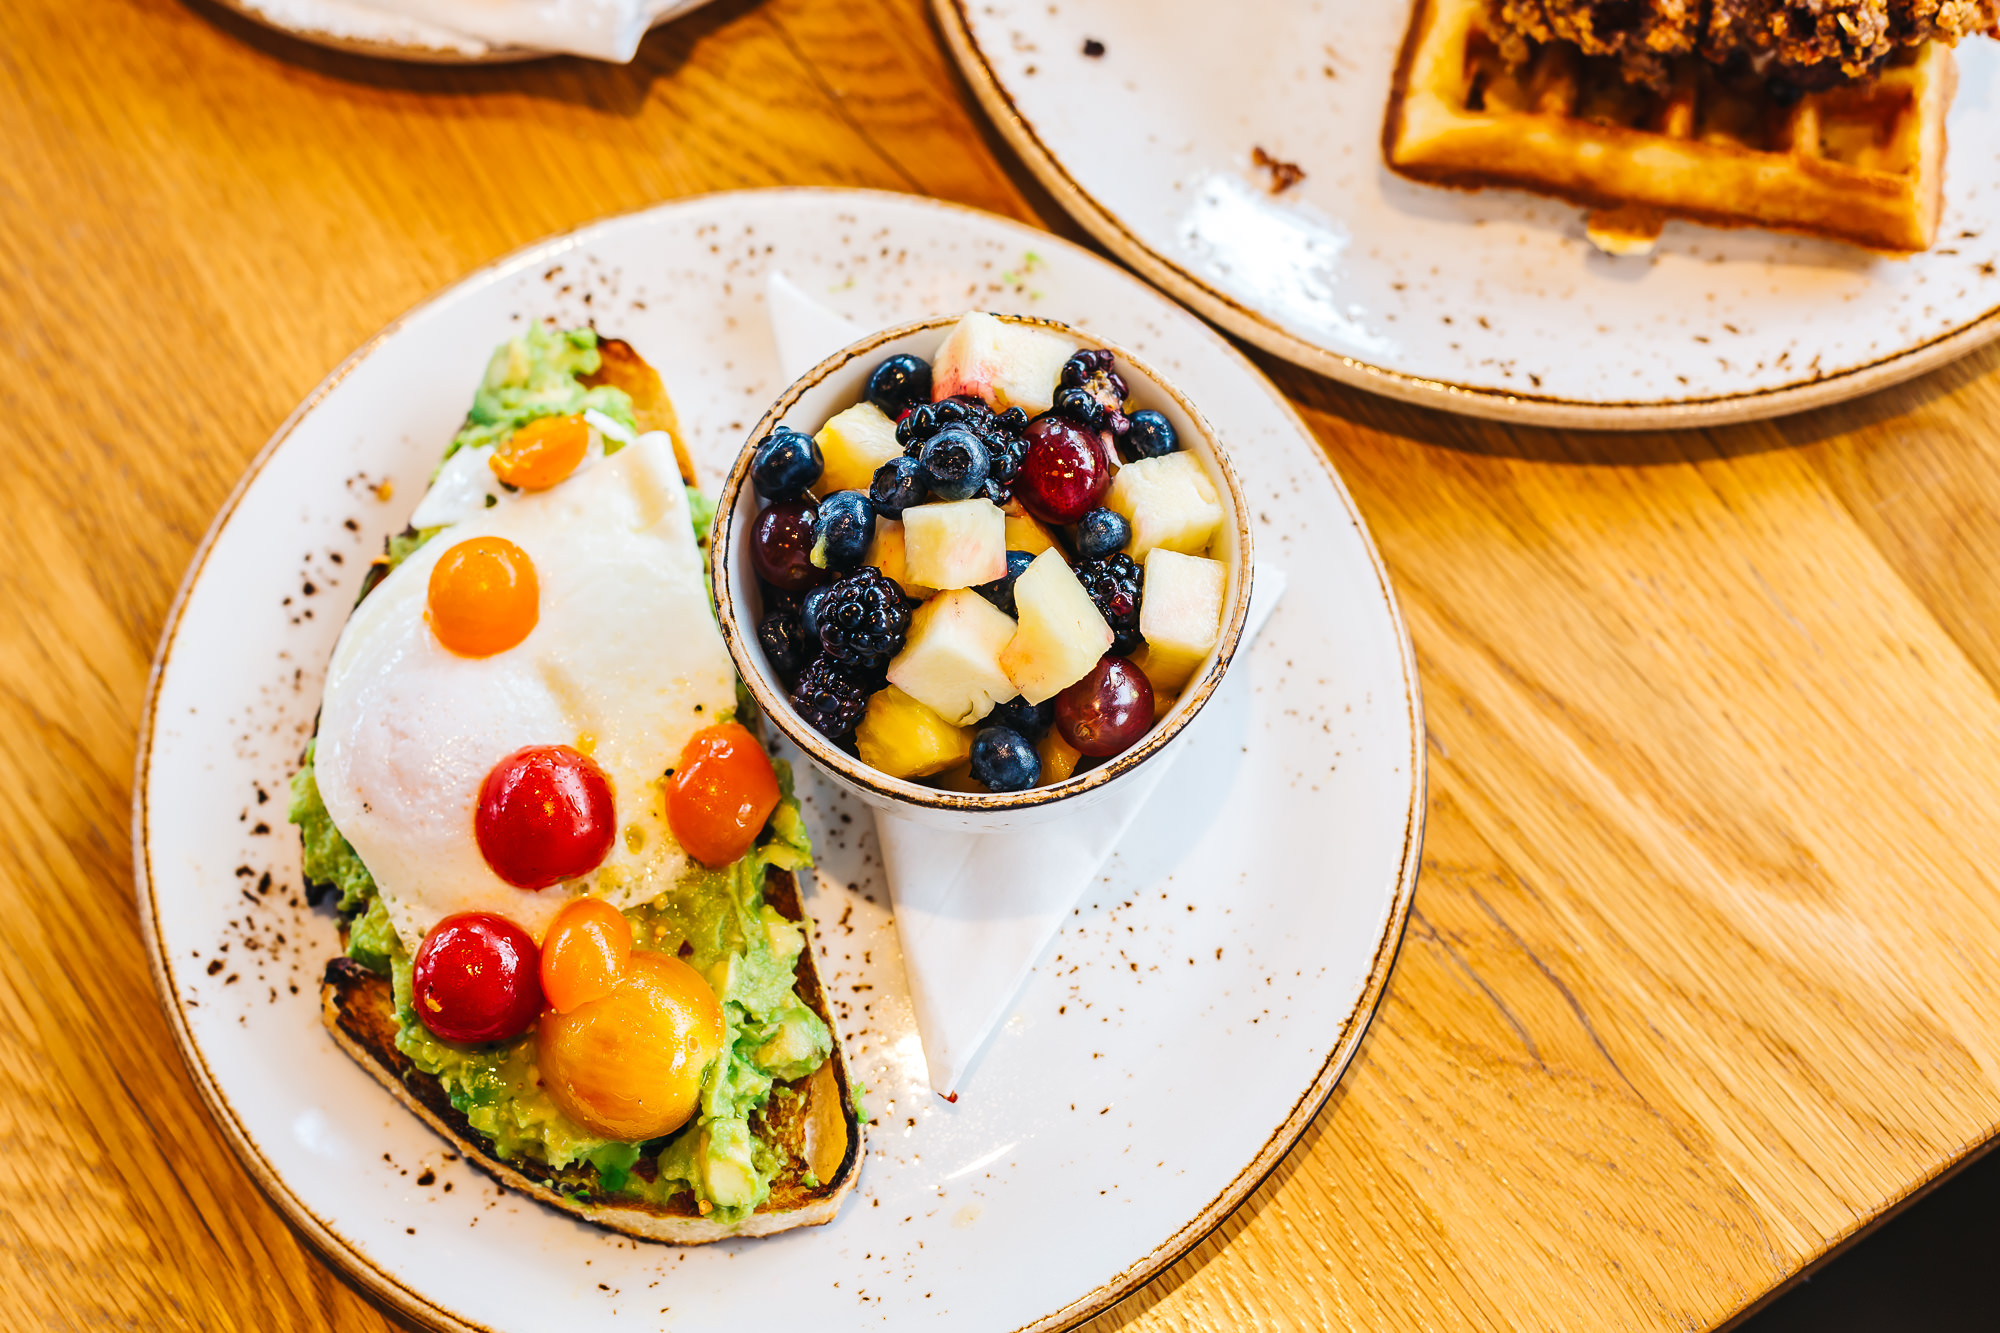 AVOCADO TOAST WITH FRIED EGG AND A BOWL OF FRUIT - BLACKBERRIES FROM RIO'S FARM